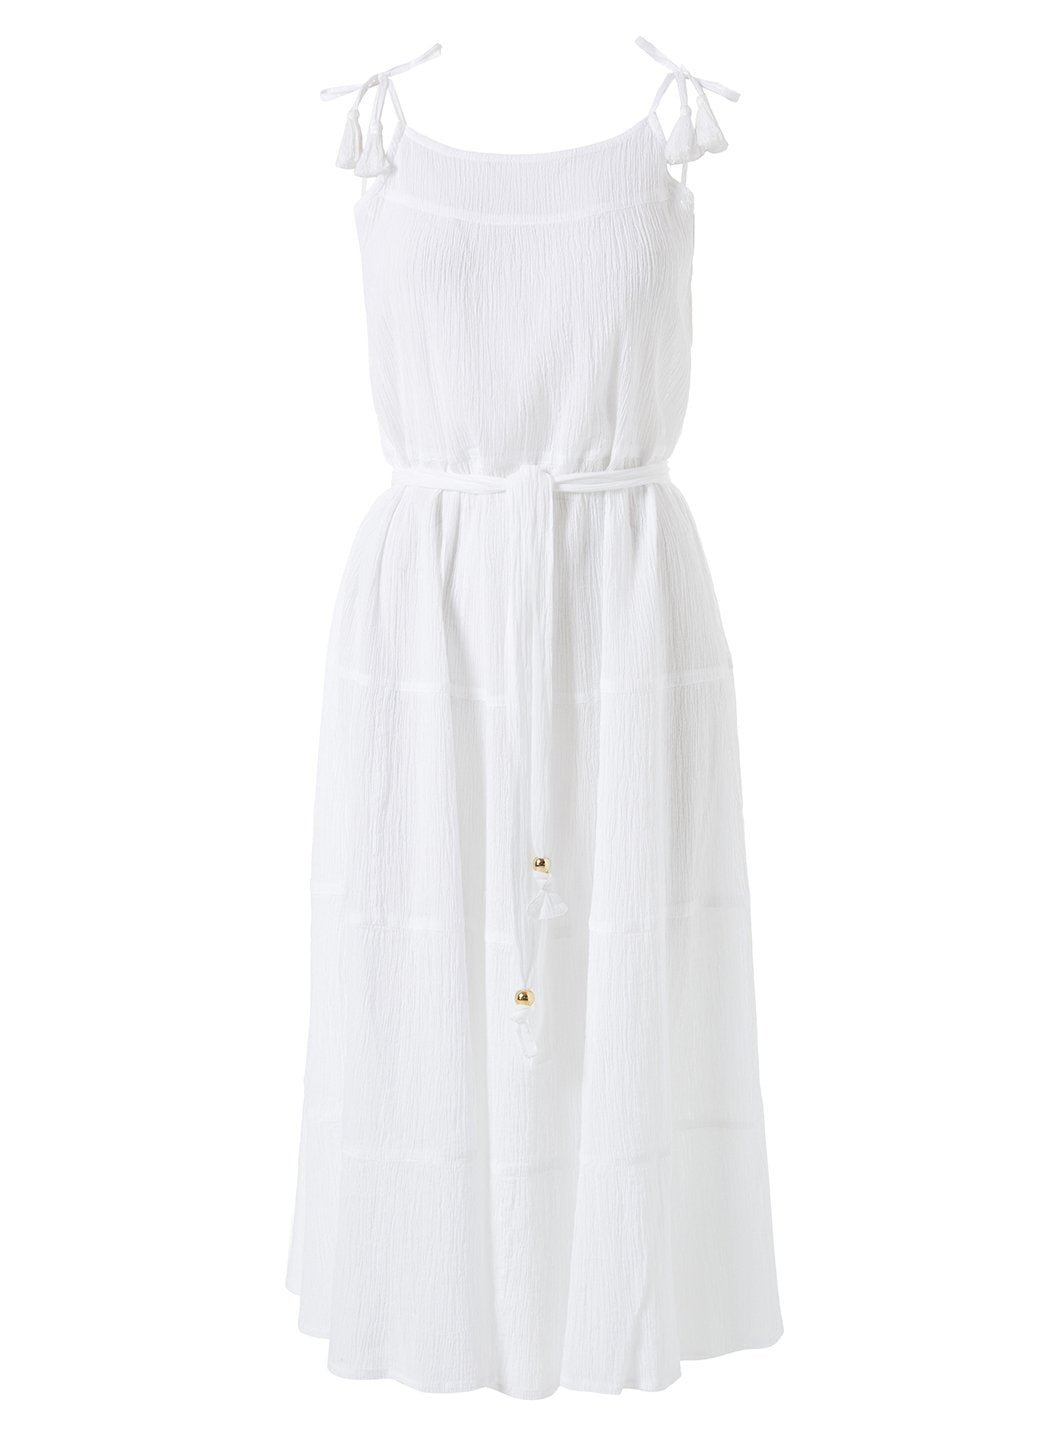 Fru White Dress